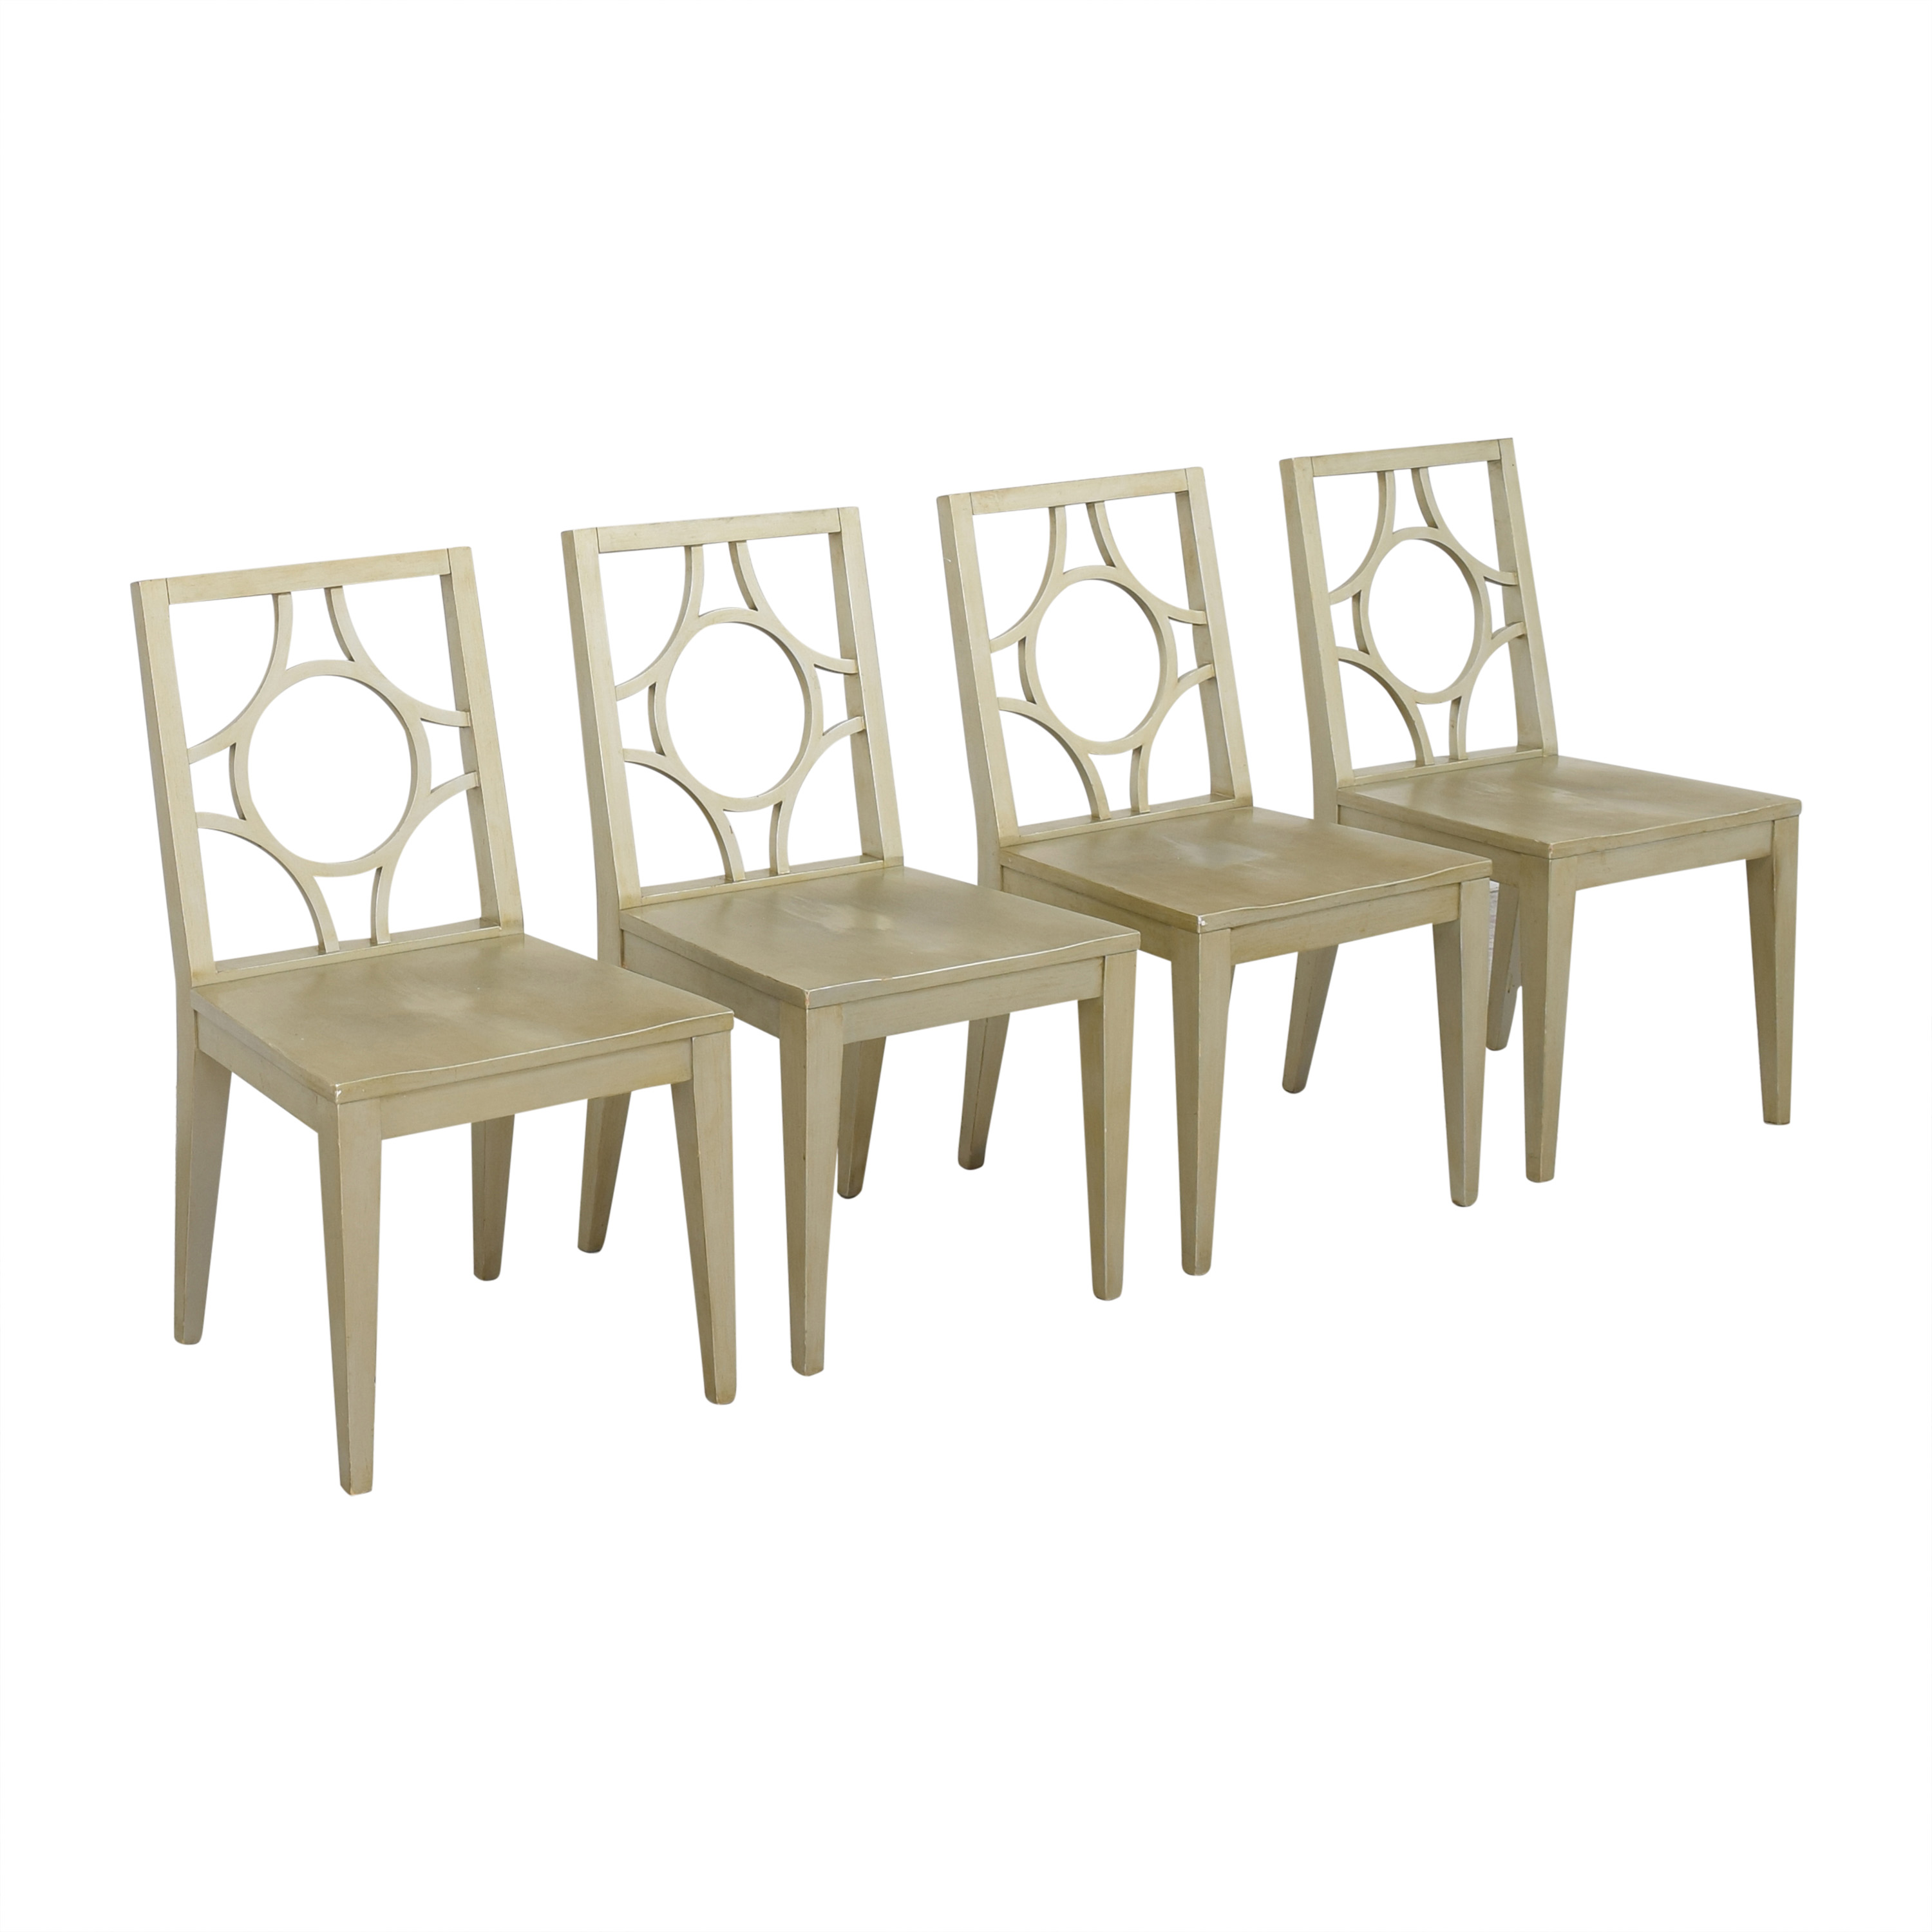 Crate & Barrel Crate & Barrel Dining Side Chairs Dining Chairs